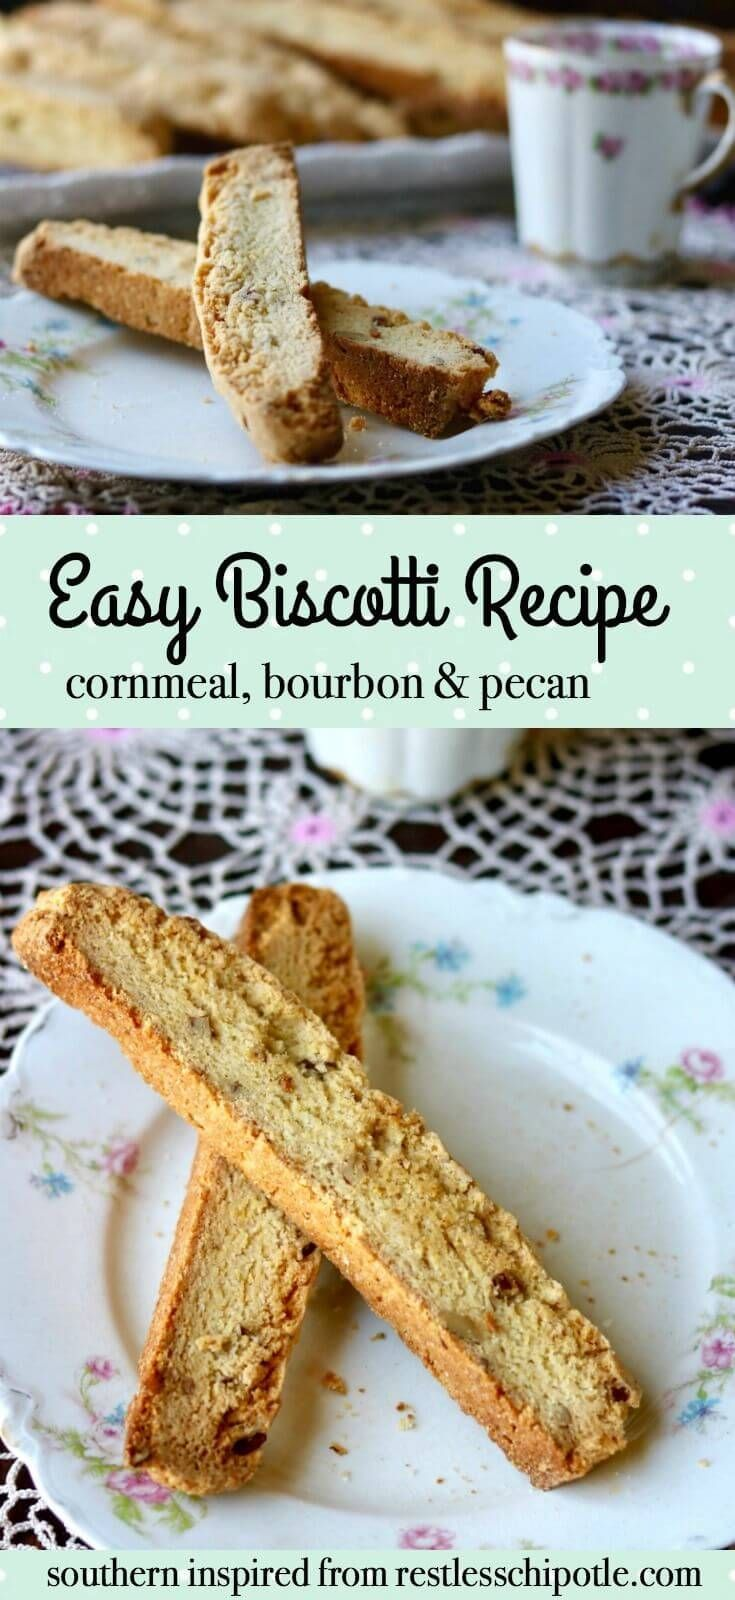 Unique easy biscotti recipe that never fails. SO good with nutty, sweet, buttery flavor. The cornmeal gives these cookies their delicious texture and flavor. From http://RestlessChipotle.com via @Marye at Restless Chipotle